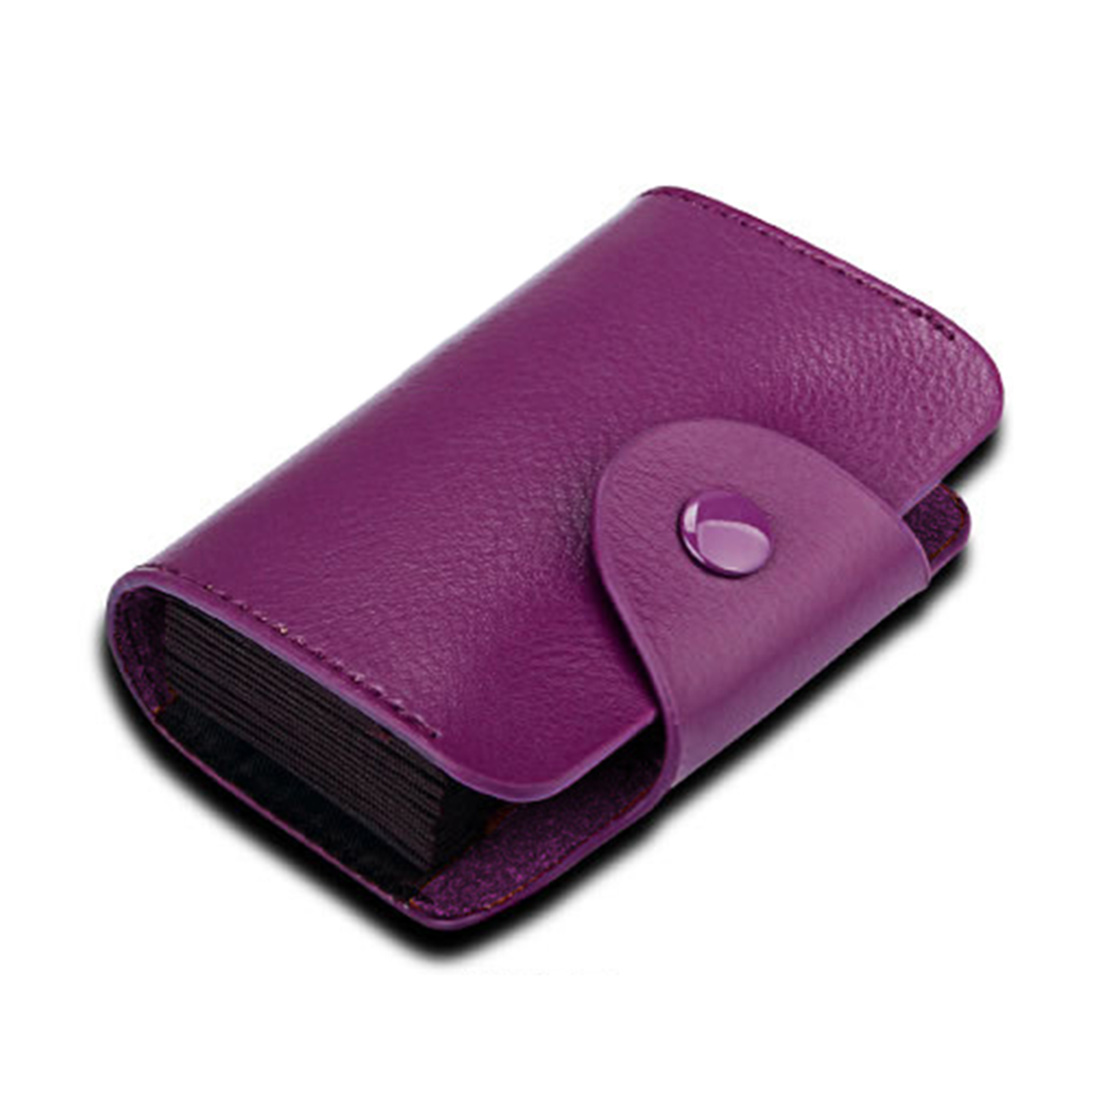 KB39 Simple Fashion Genuine leather Organ Card Bag Candy Color Card Package (Purple)